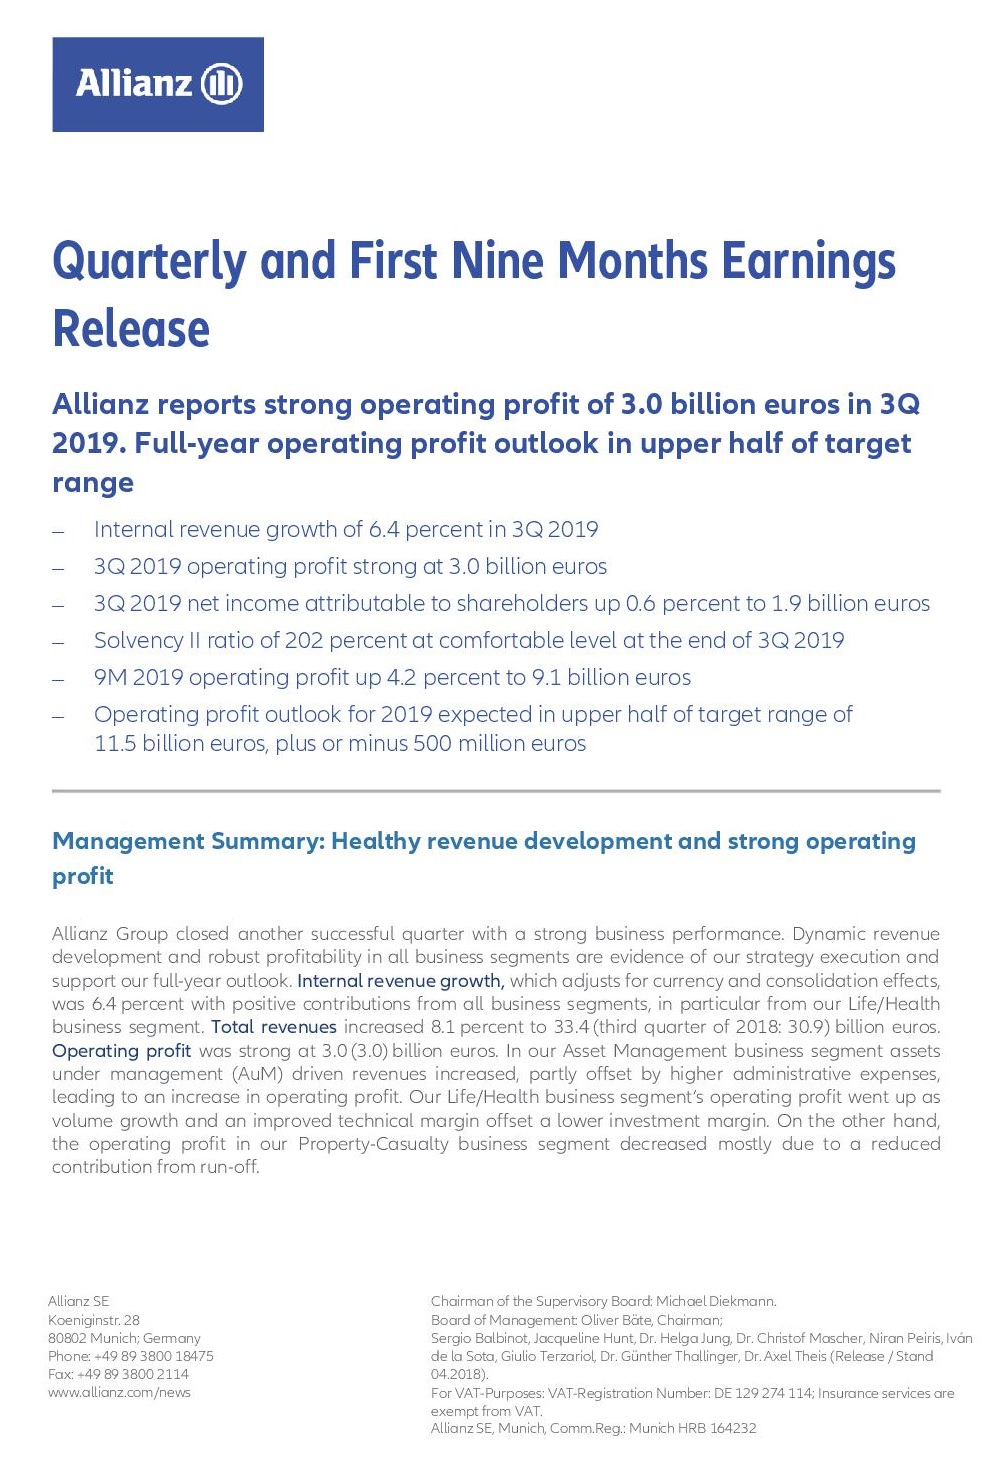 Allianz 3Q2019 earnings release EN 1